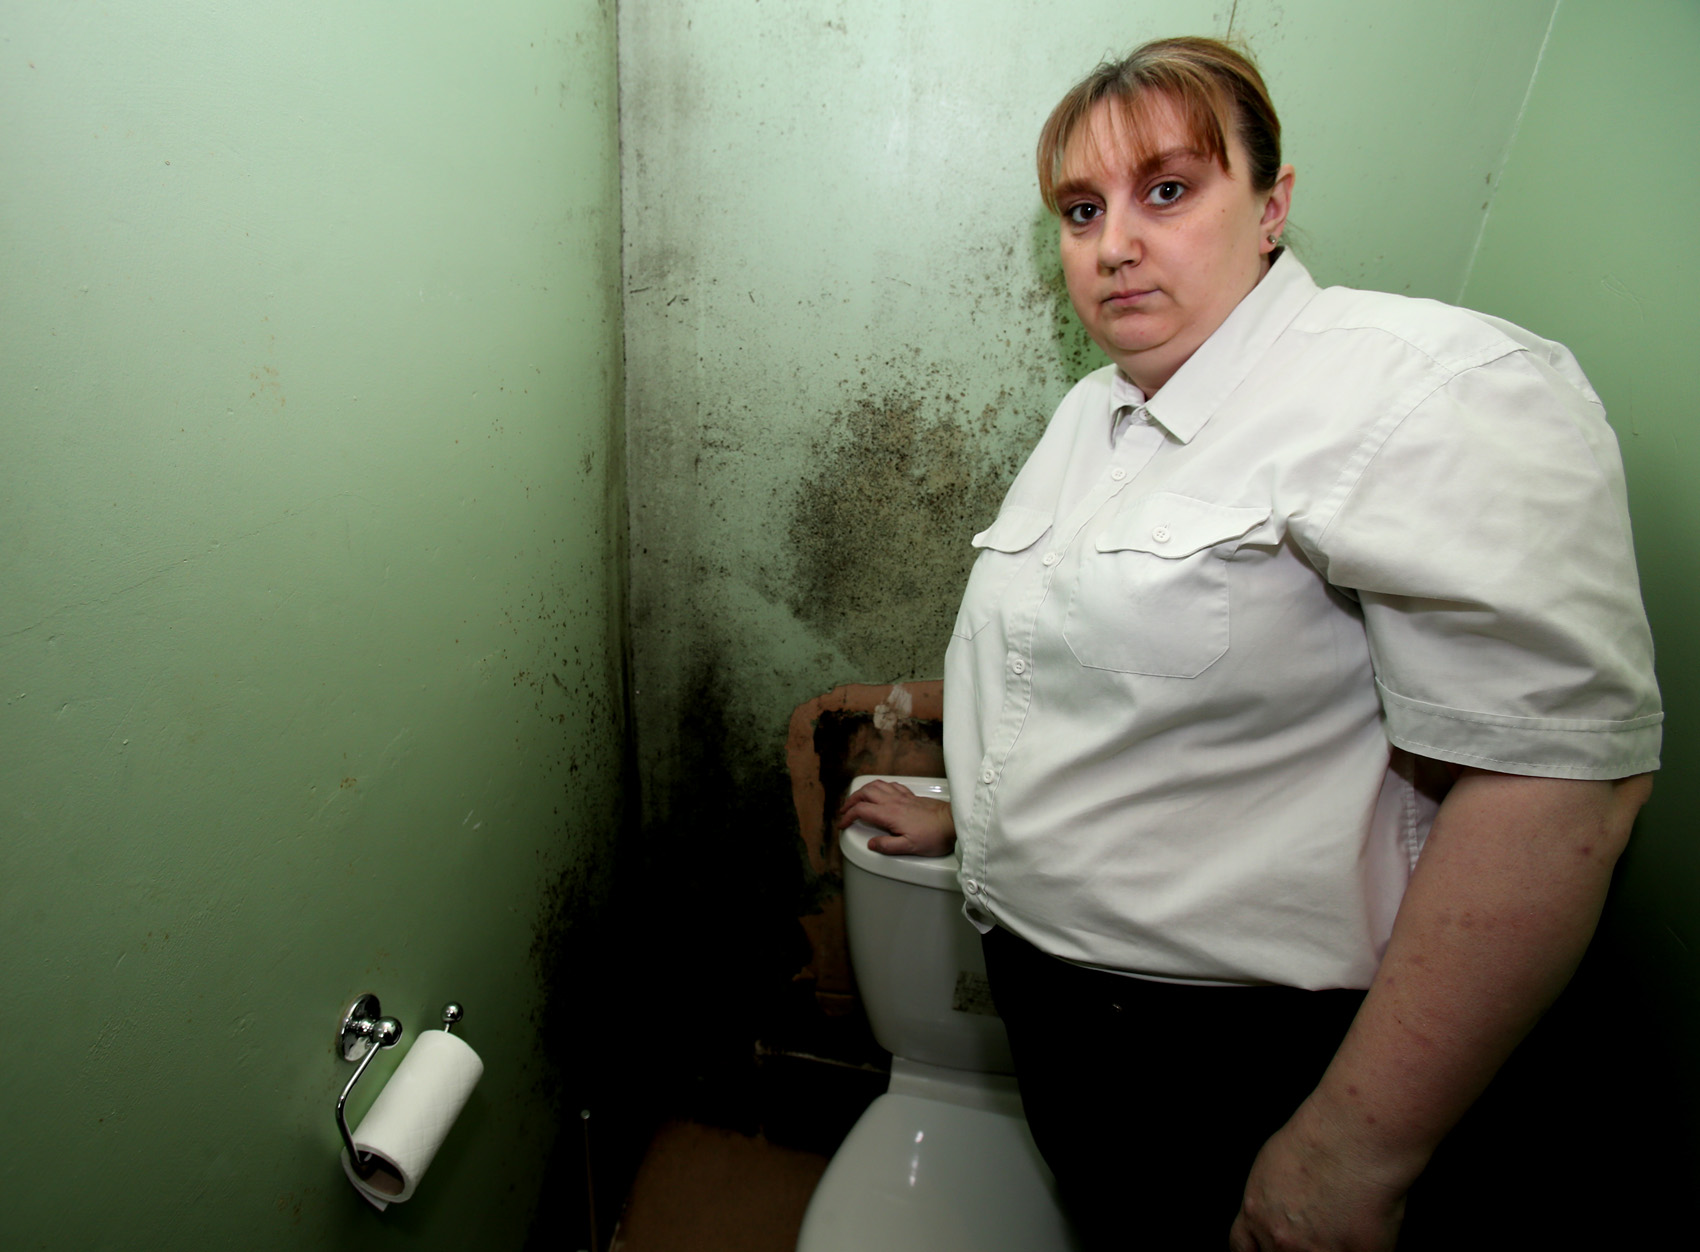 Mother fearful of daughter's health in mould-infested home